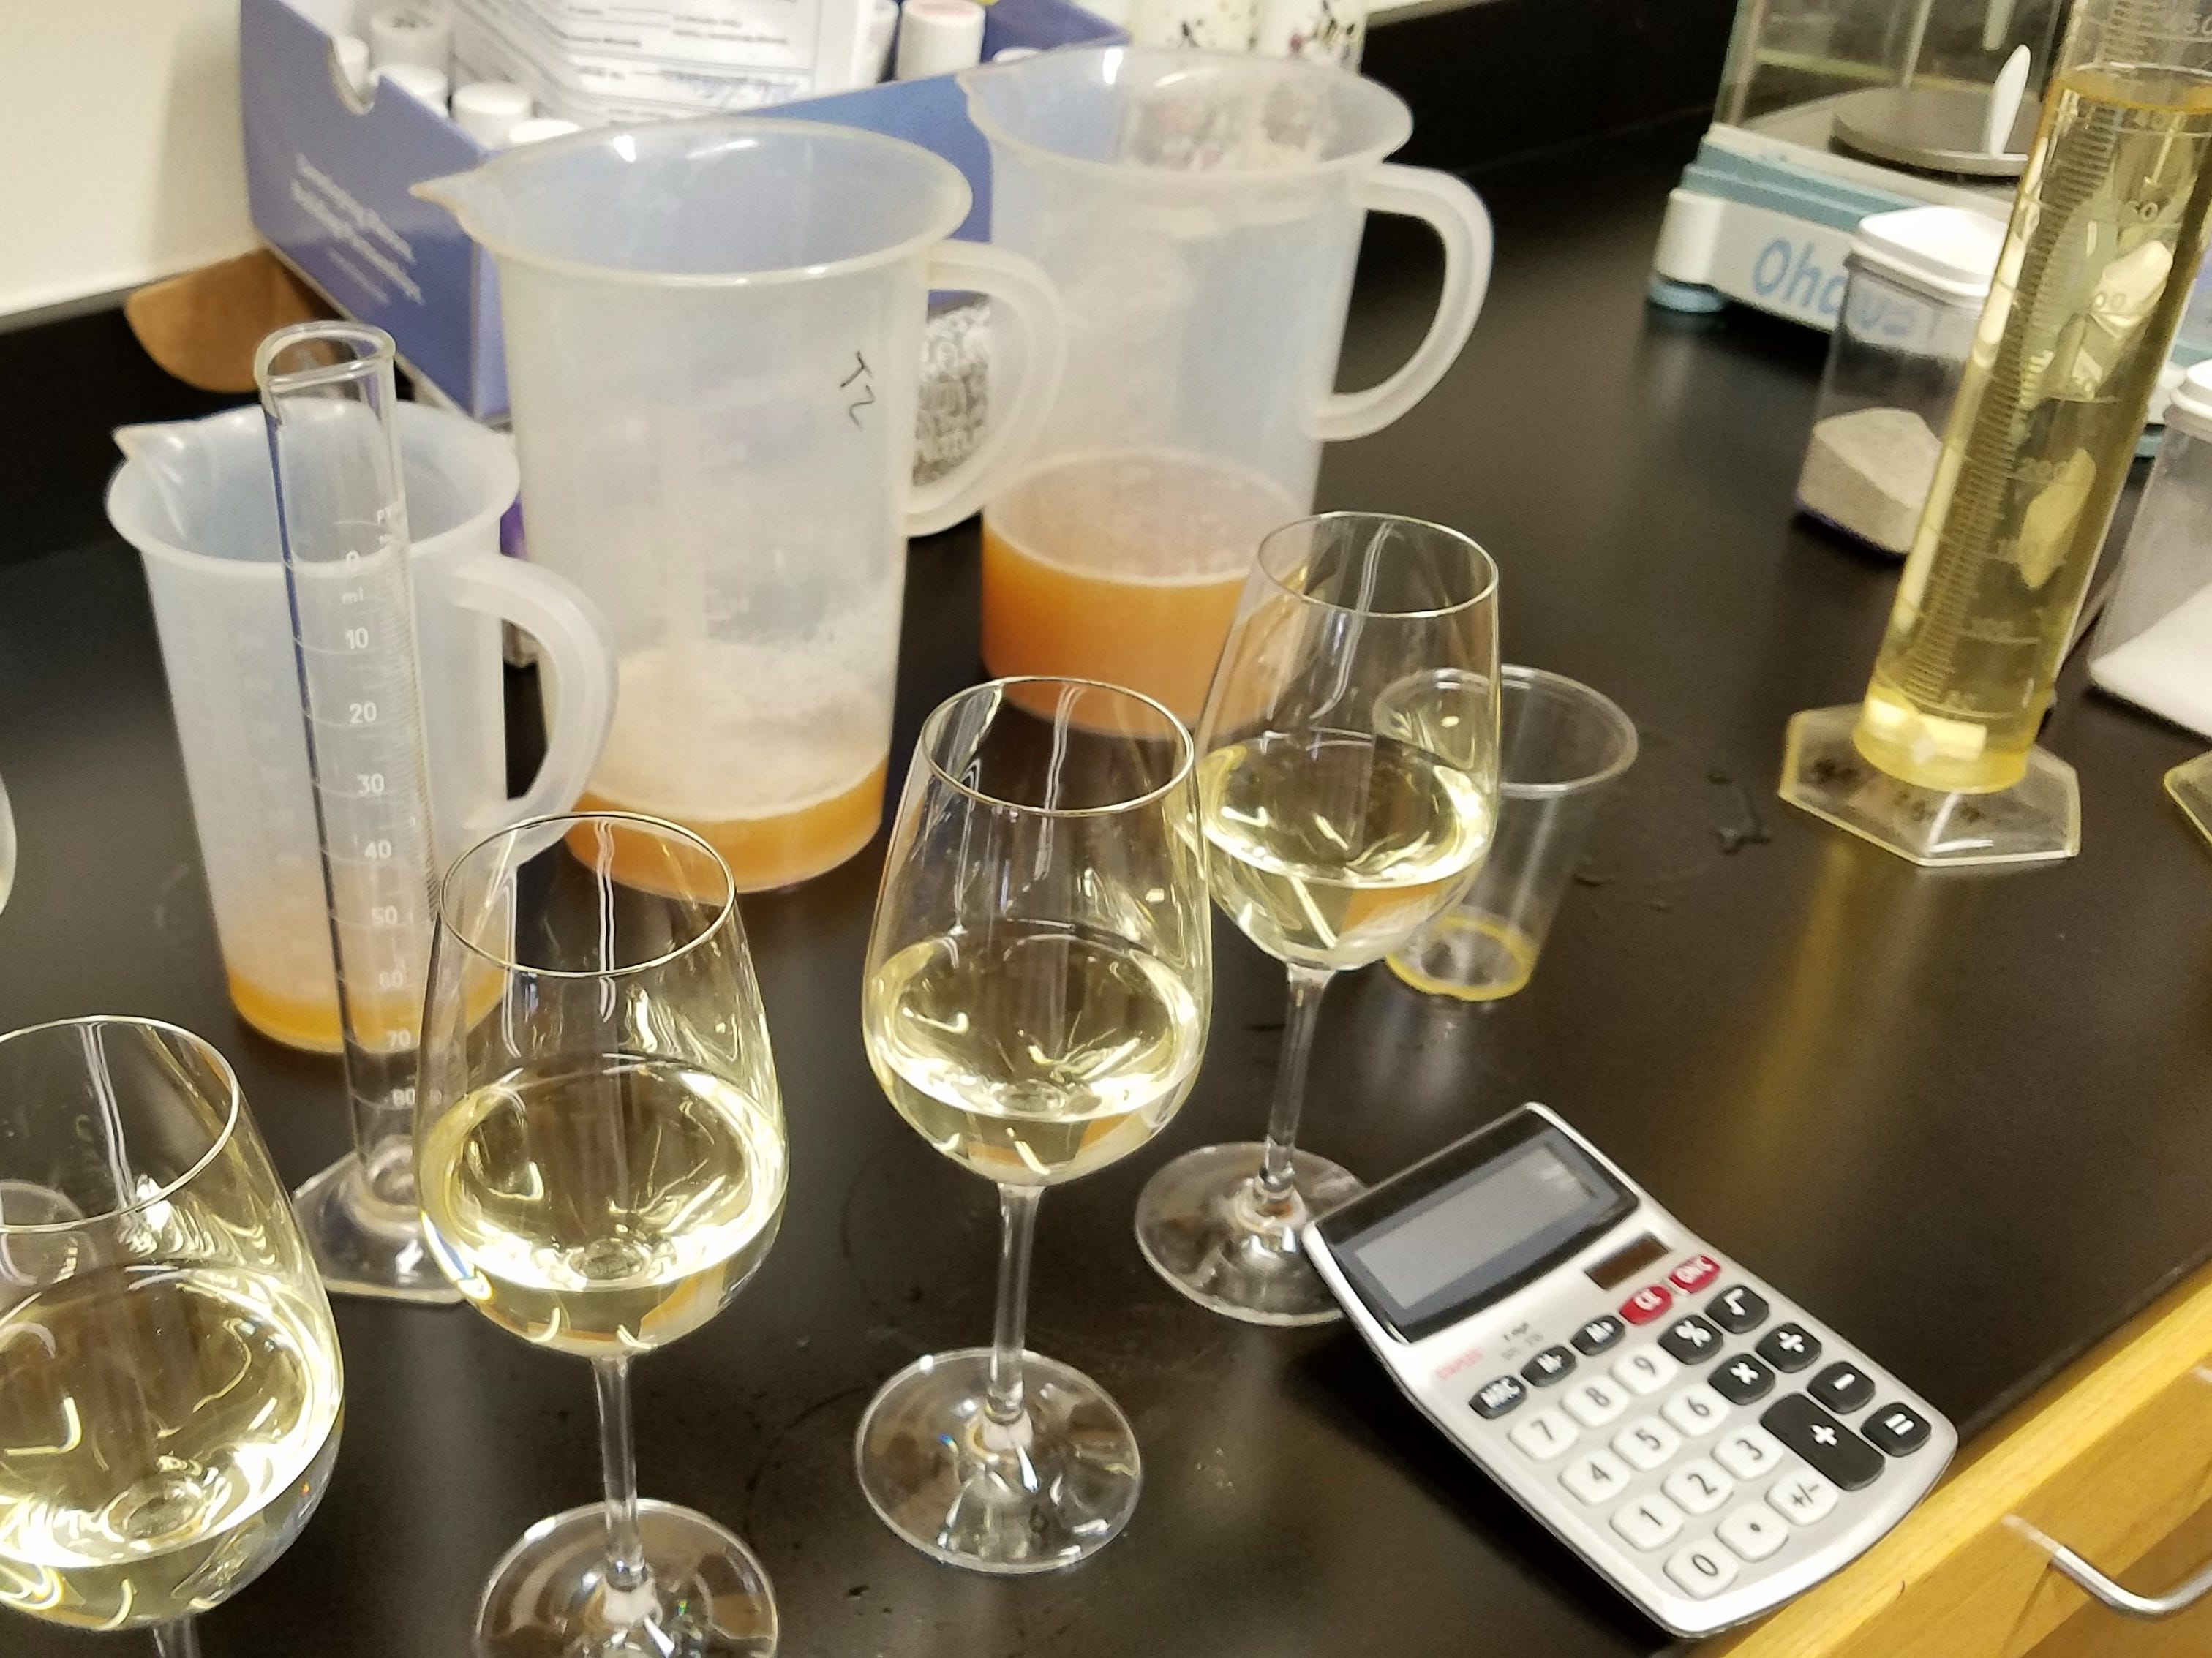 Glasses of Moscato wine and pitchers of apple juice in the lab at Oliver Winery in Bloomington.